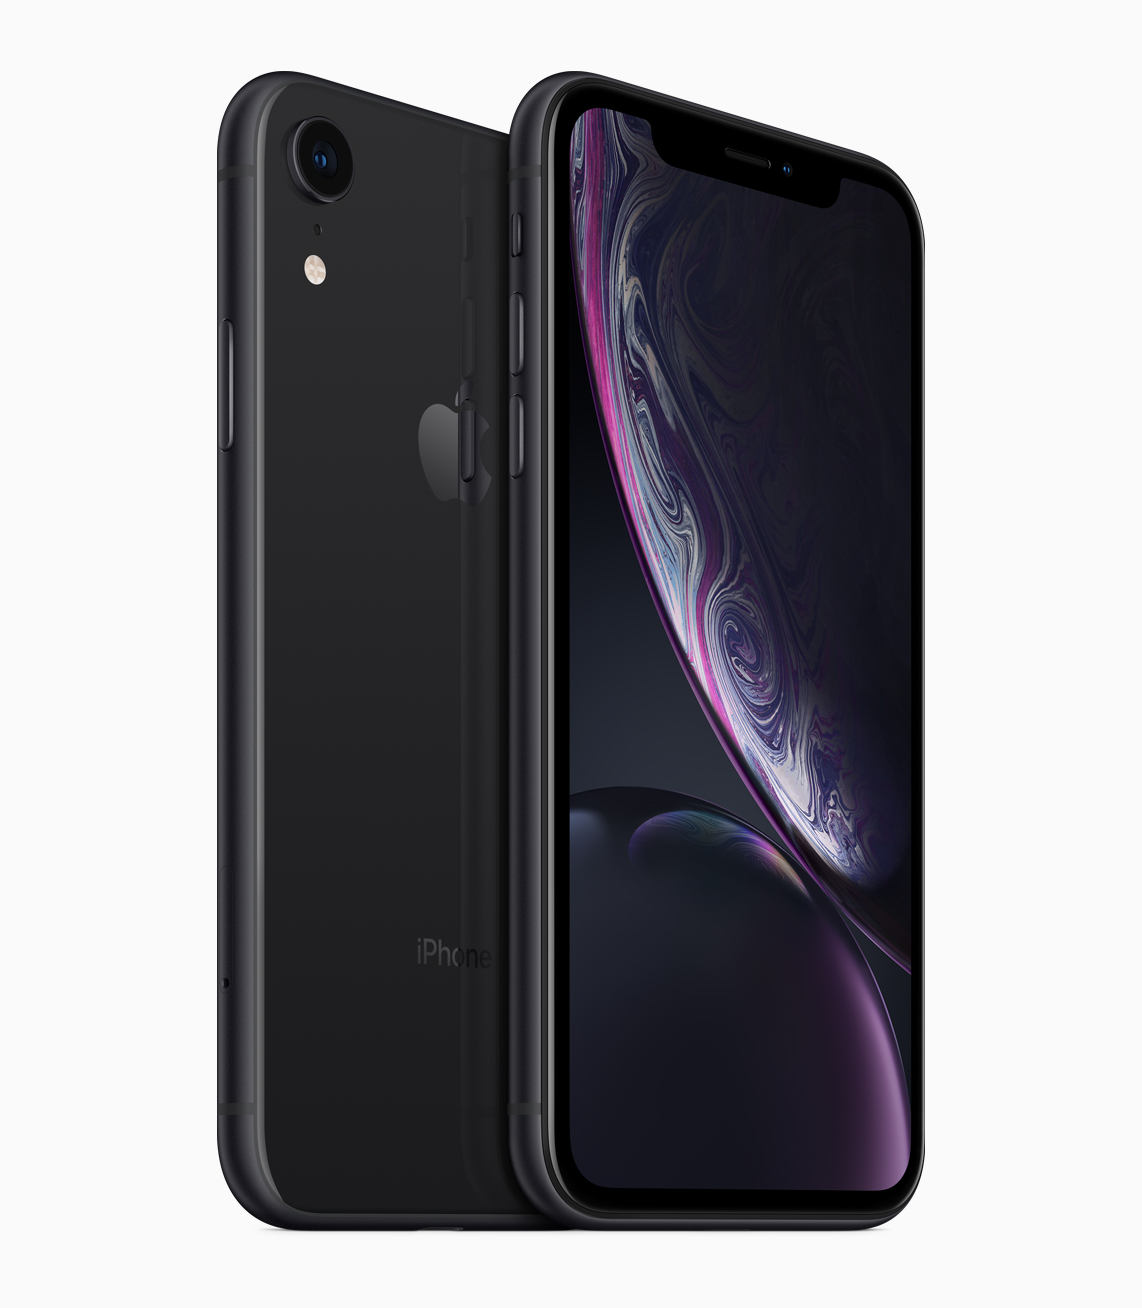 iPhone_XR_black-back_09122018.jpg